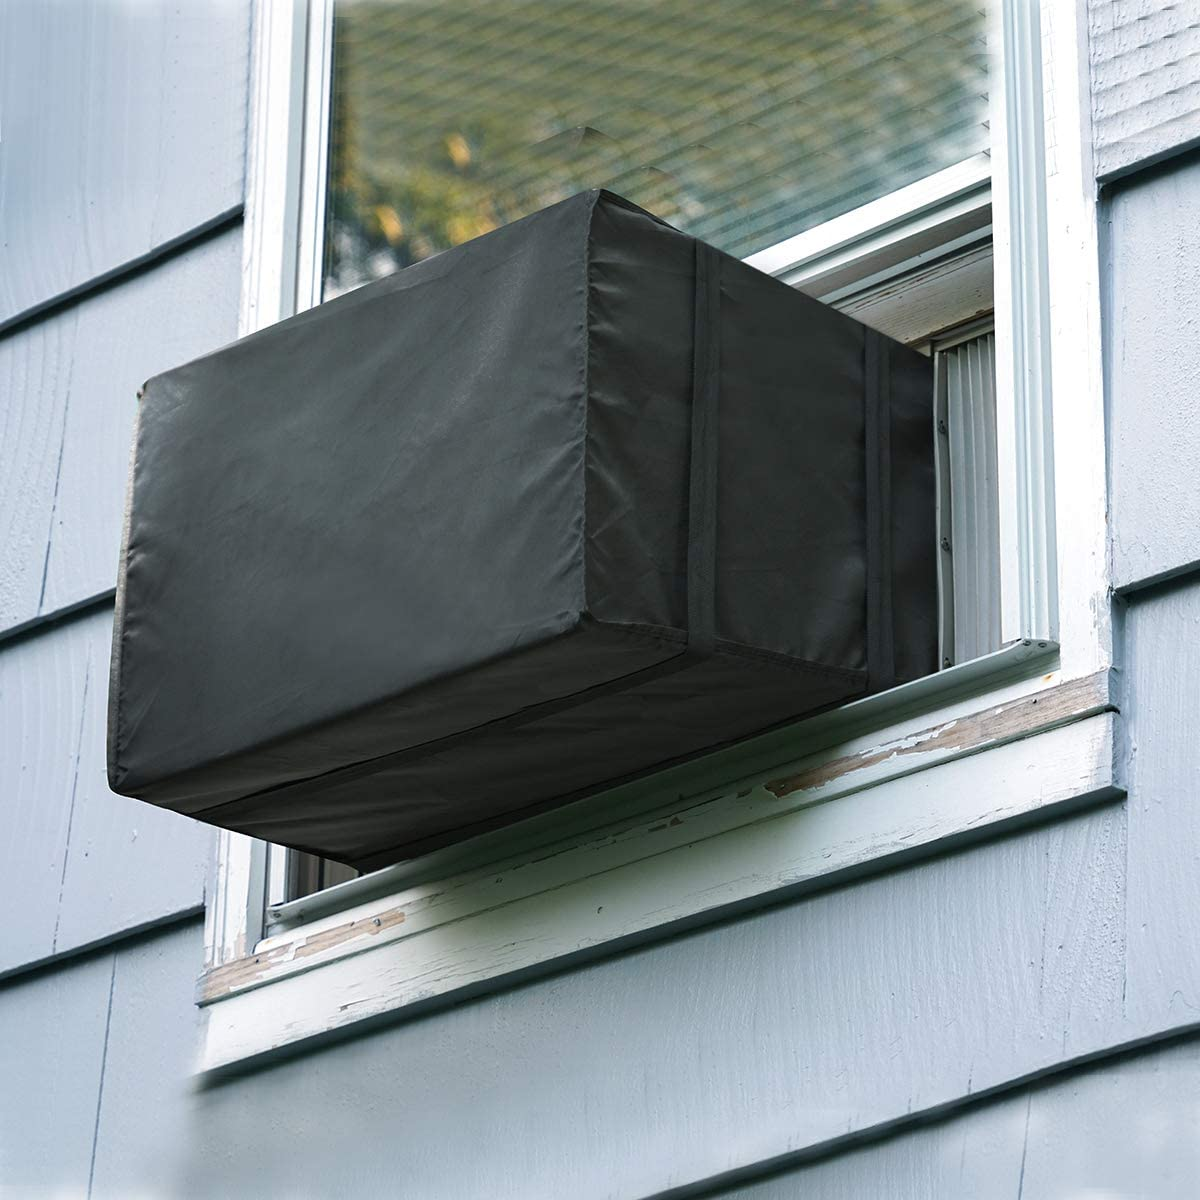 Luxiv Window Air Conditioner Cover Outdoor, Outside Window AC Unit Cover Black Dust-Proof Waterproof AC Cover Outdoor Window AC Protection Cover (21Wx16Dx15H)